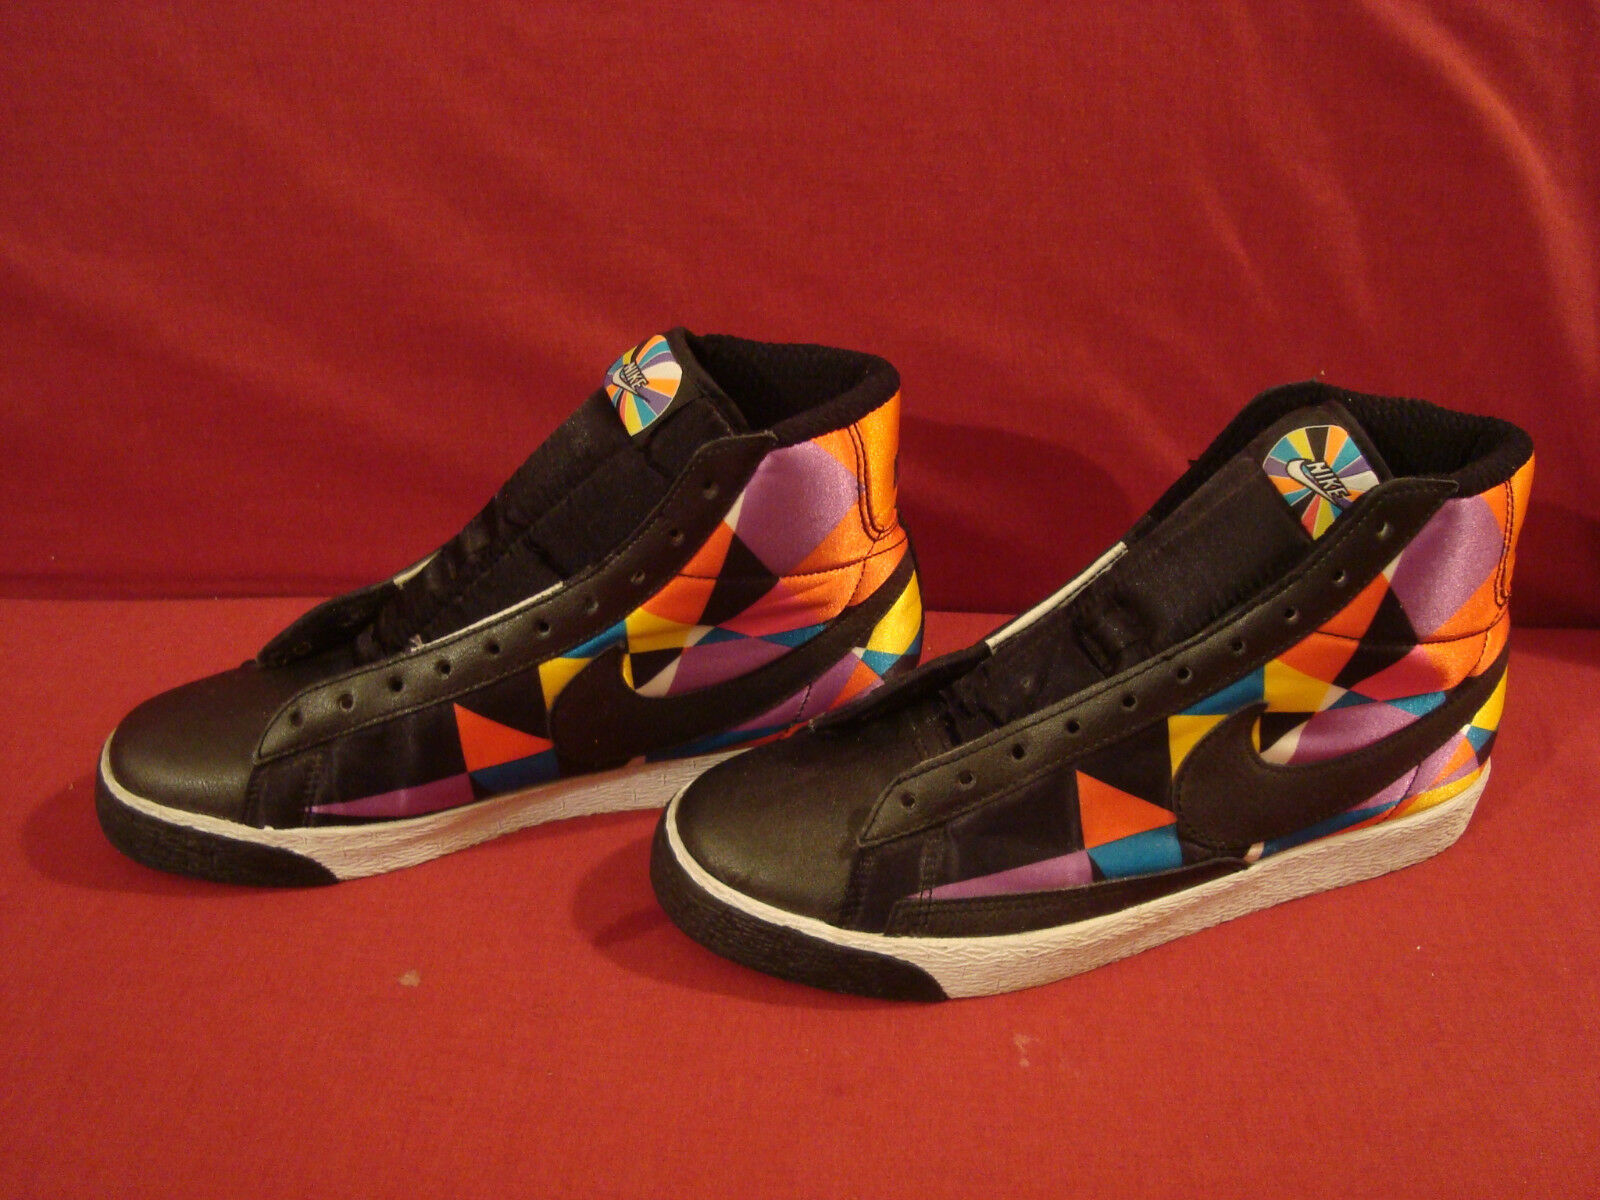 NIKE MULTI WOMEN'S MULTI NIKE COLOROT QUILTED SNEAKERS EXCELLENT CONDITION c0c8e1